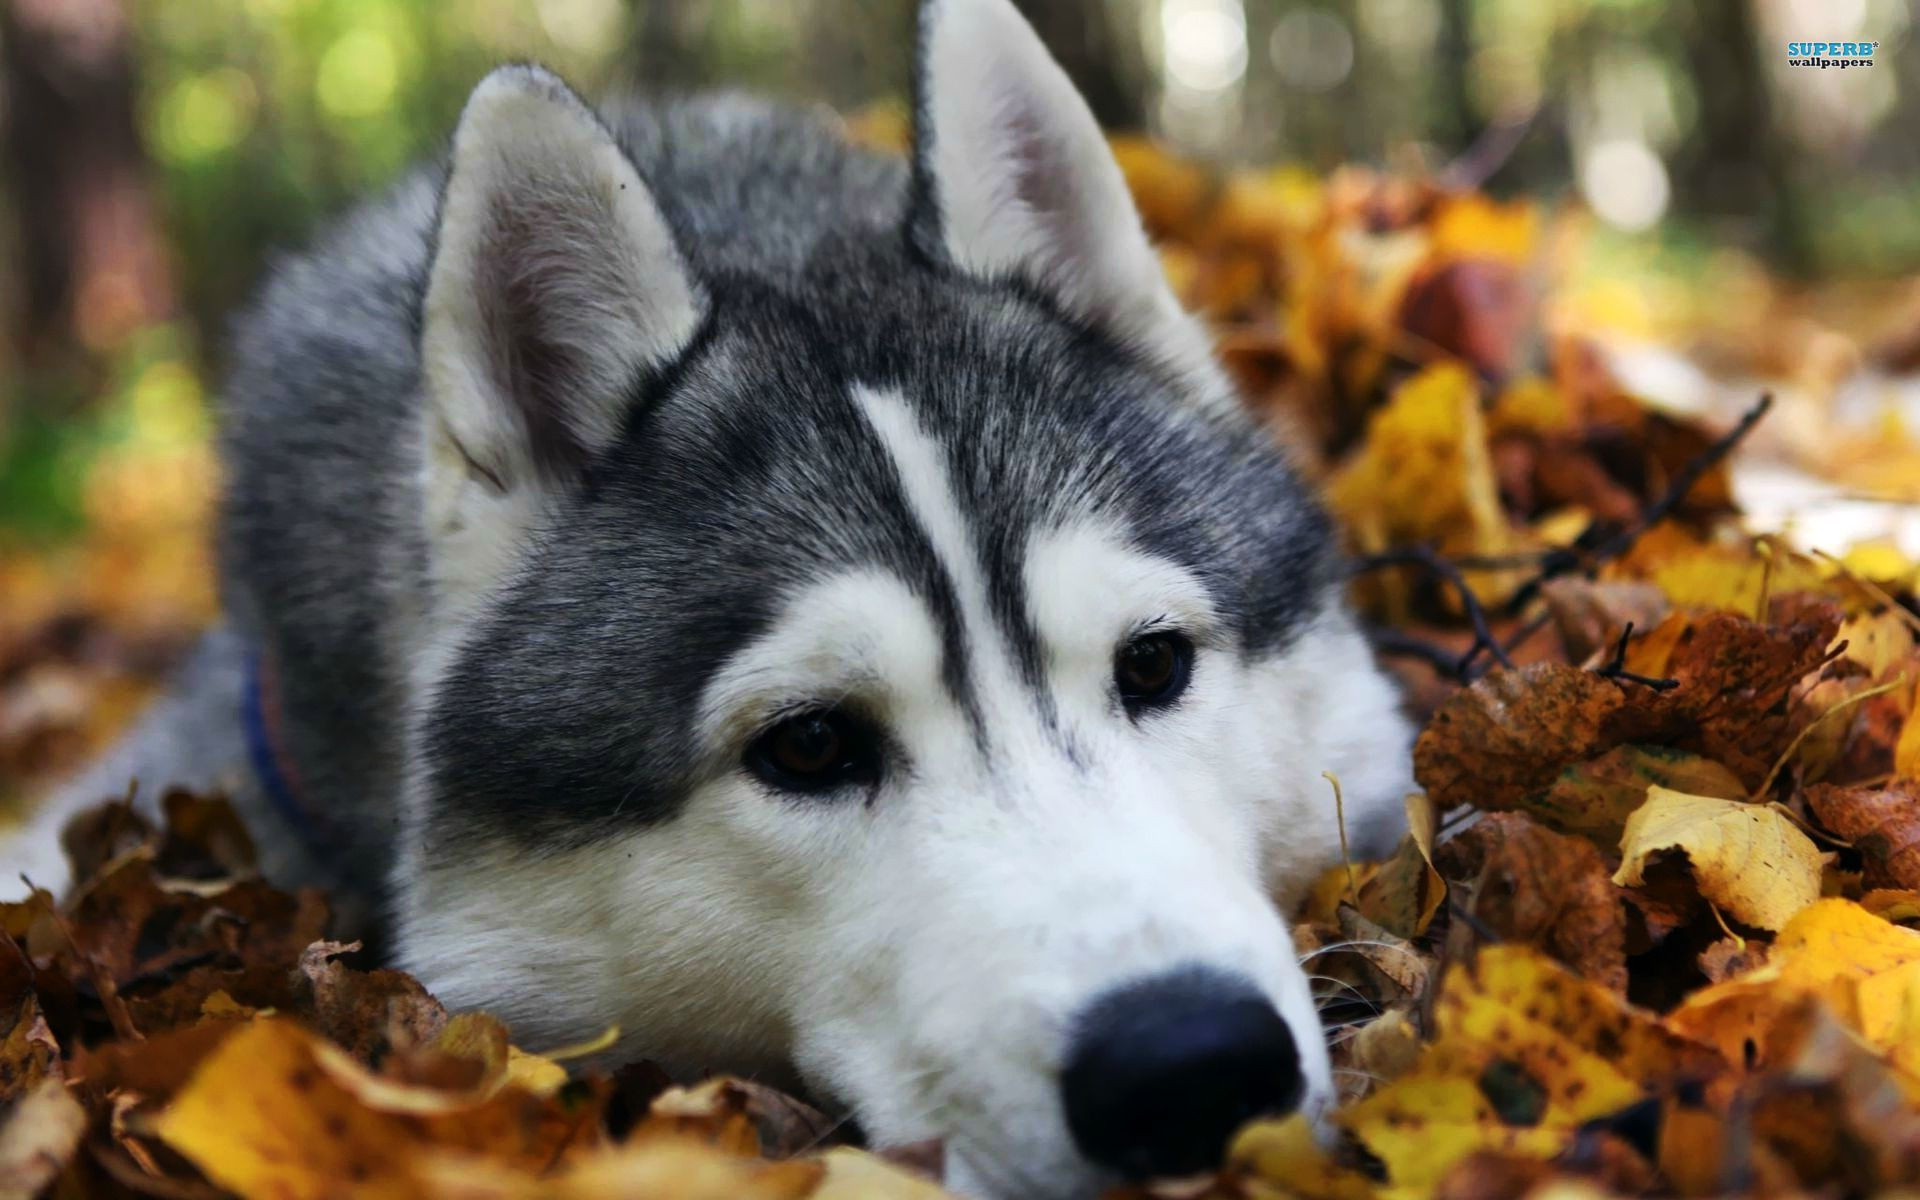 Husky Computer Background Animal Hd Wallpapers Cute Animals Husky Dogs Dogs And Puppies